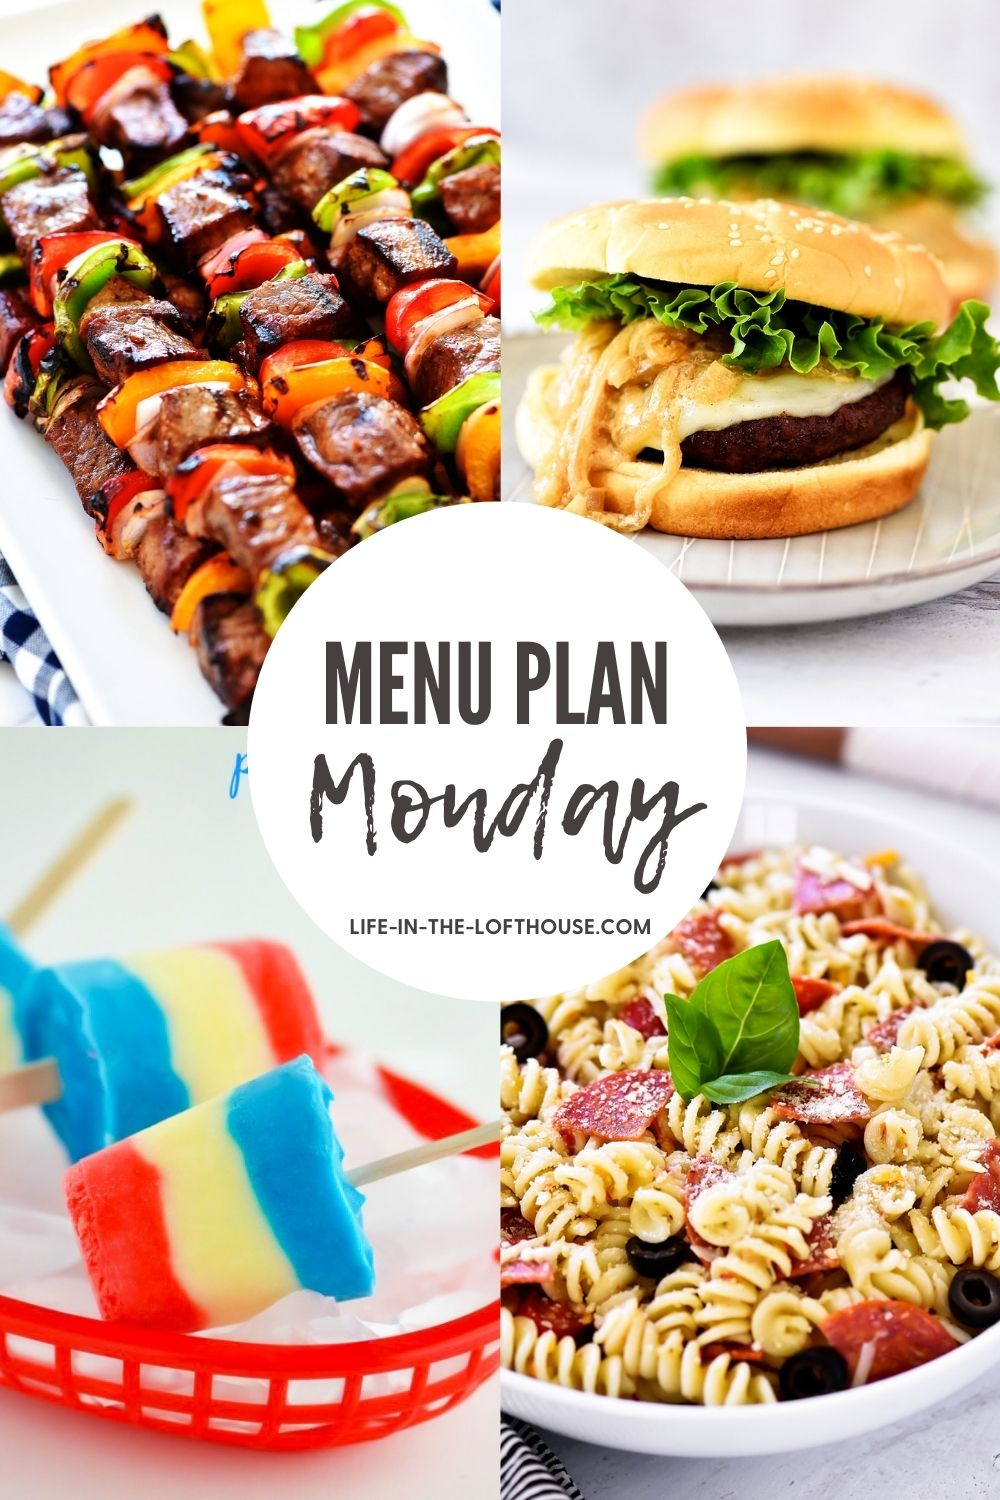 Menu Plan Monday is a weekly menu filled with delicious dinner recipes. All of the recipes are easy to follow and great for busy weeknights!